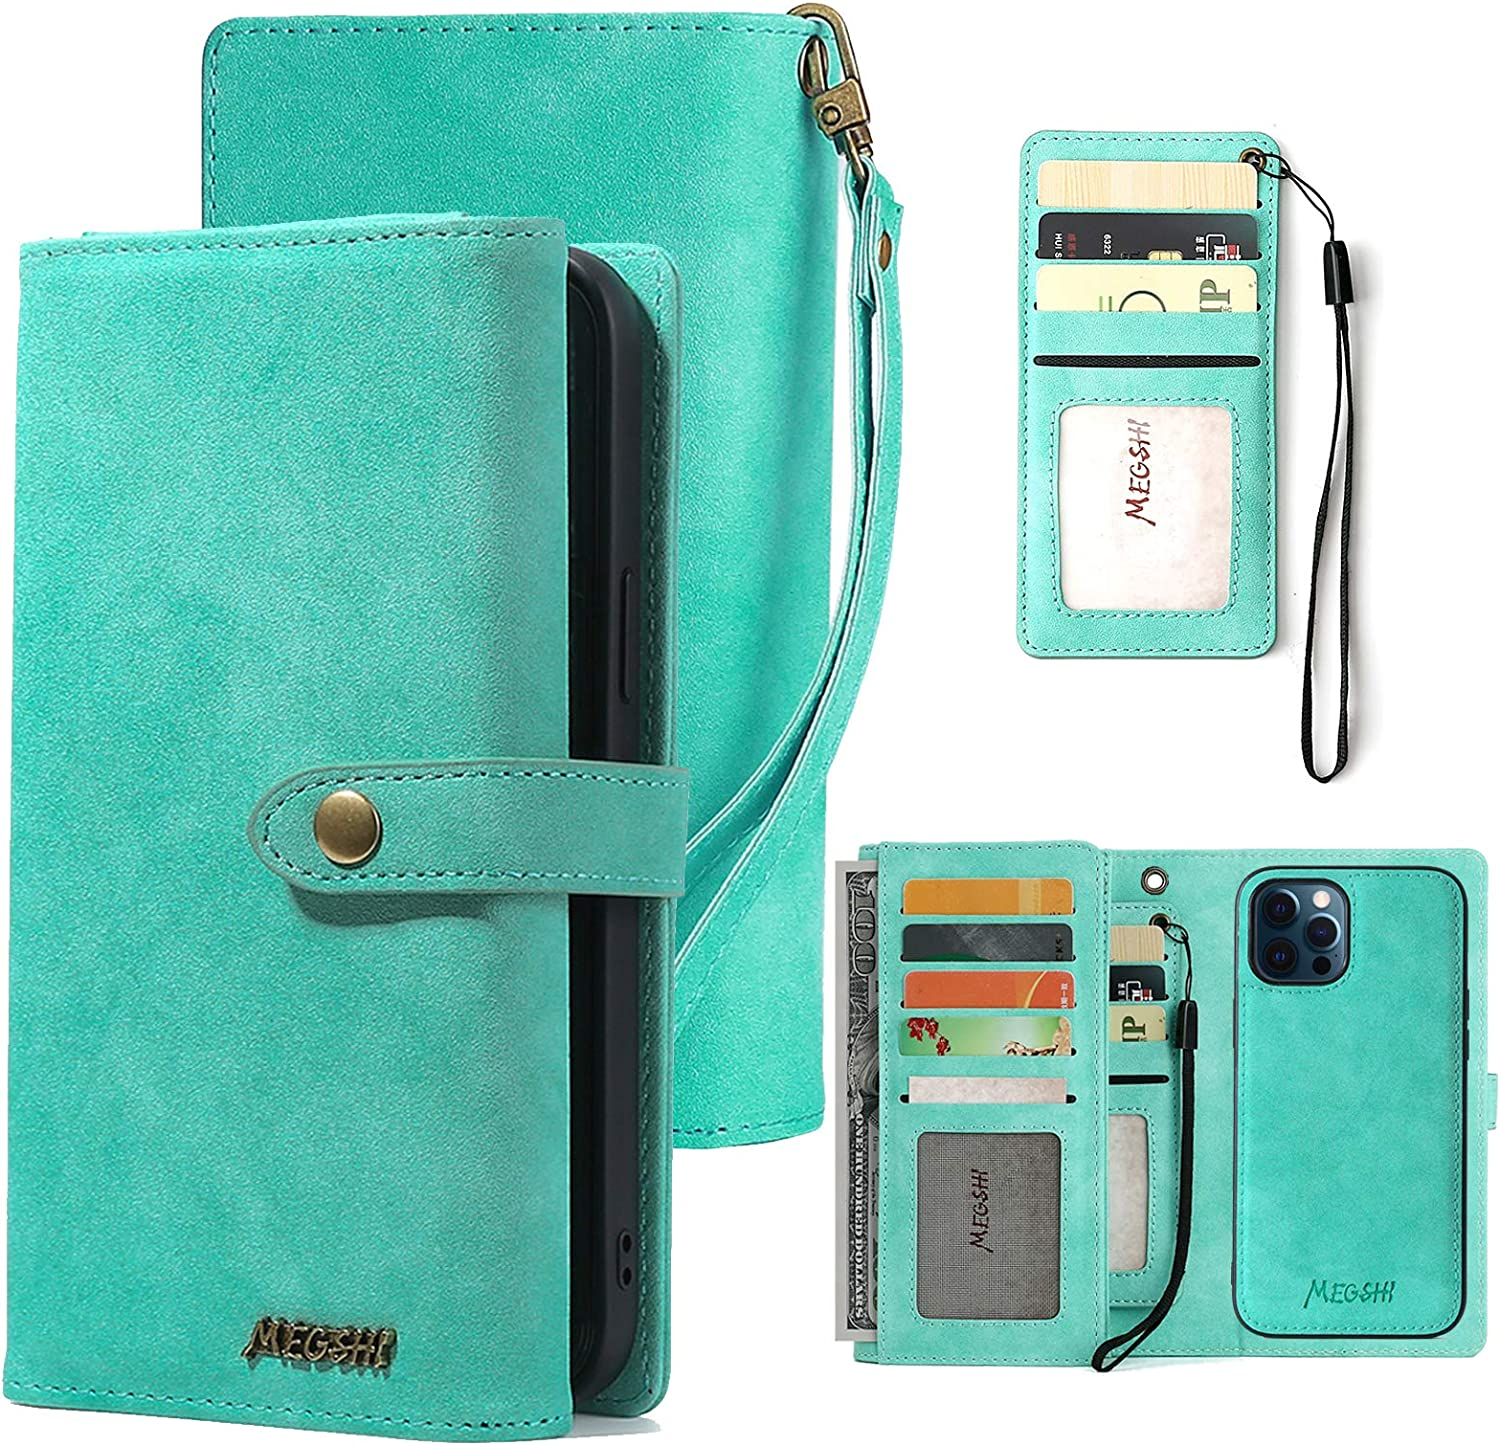 Wallet Case for iPhone 12 Pro Max, eVord 2 in 1 Vegan Leather Detachable Magnetic Wallet Pocket Clutch Folio Flip Credit Card Slots Removable Sleeve Shock Protection Cover Wrist Strap 6.7Inch Green